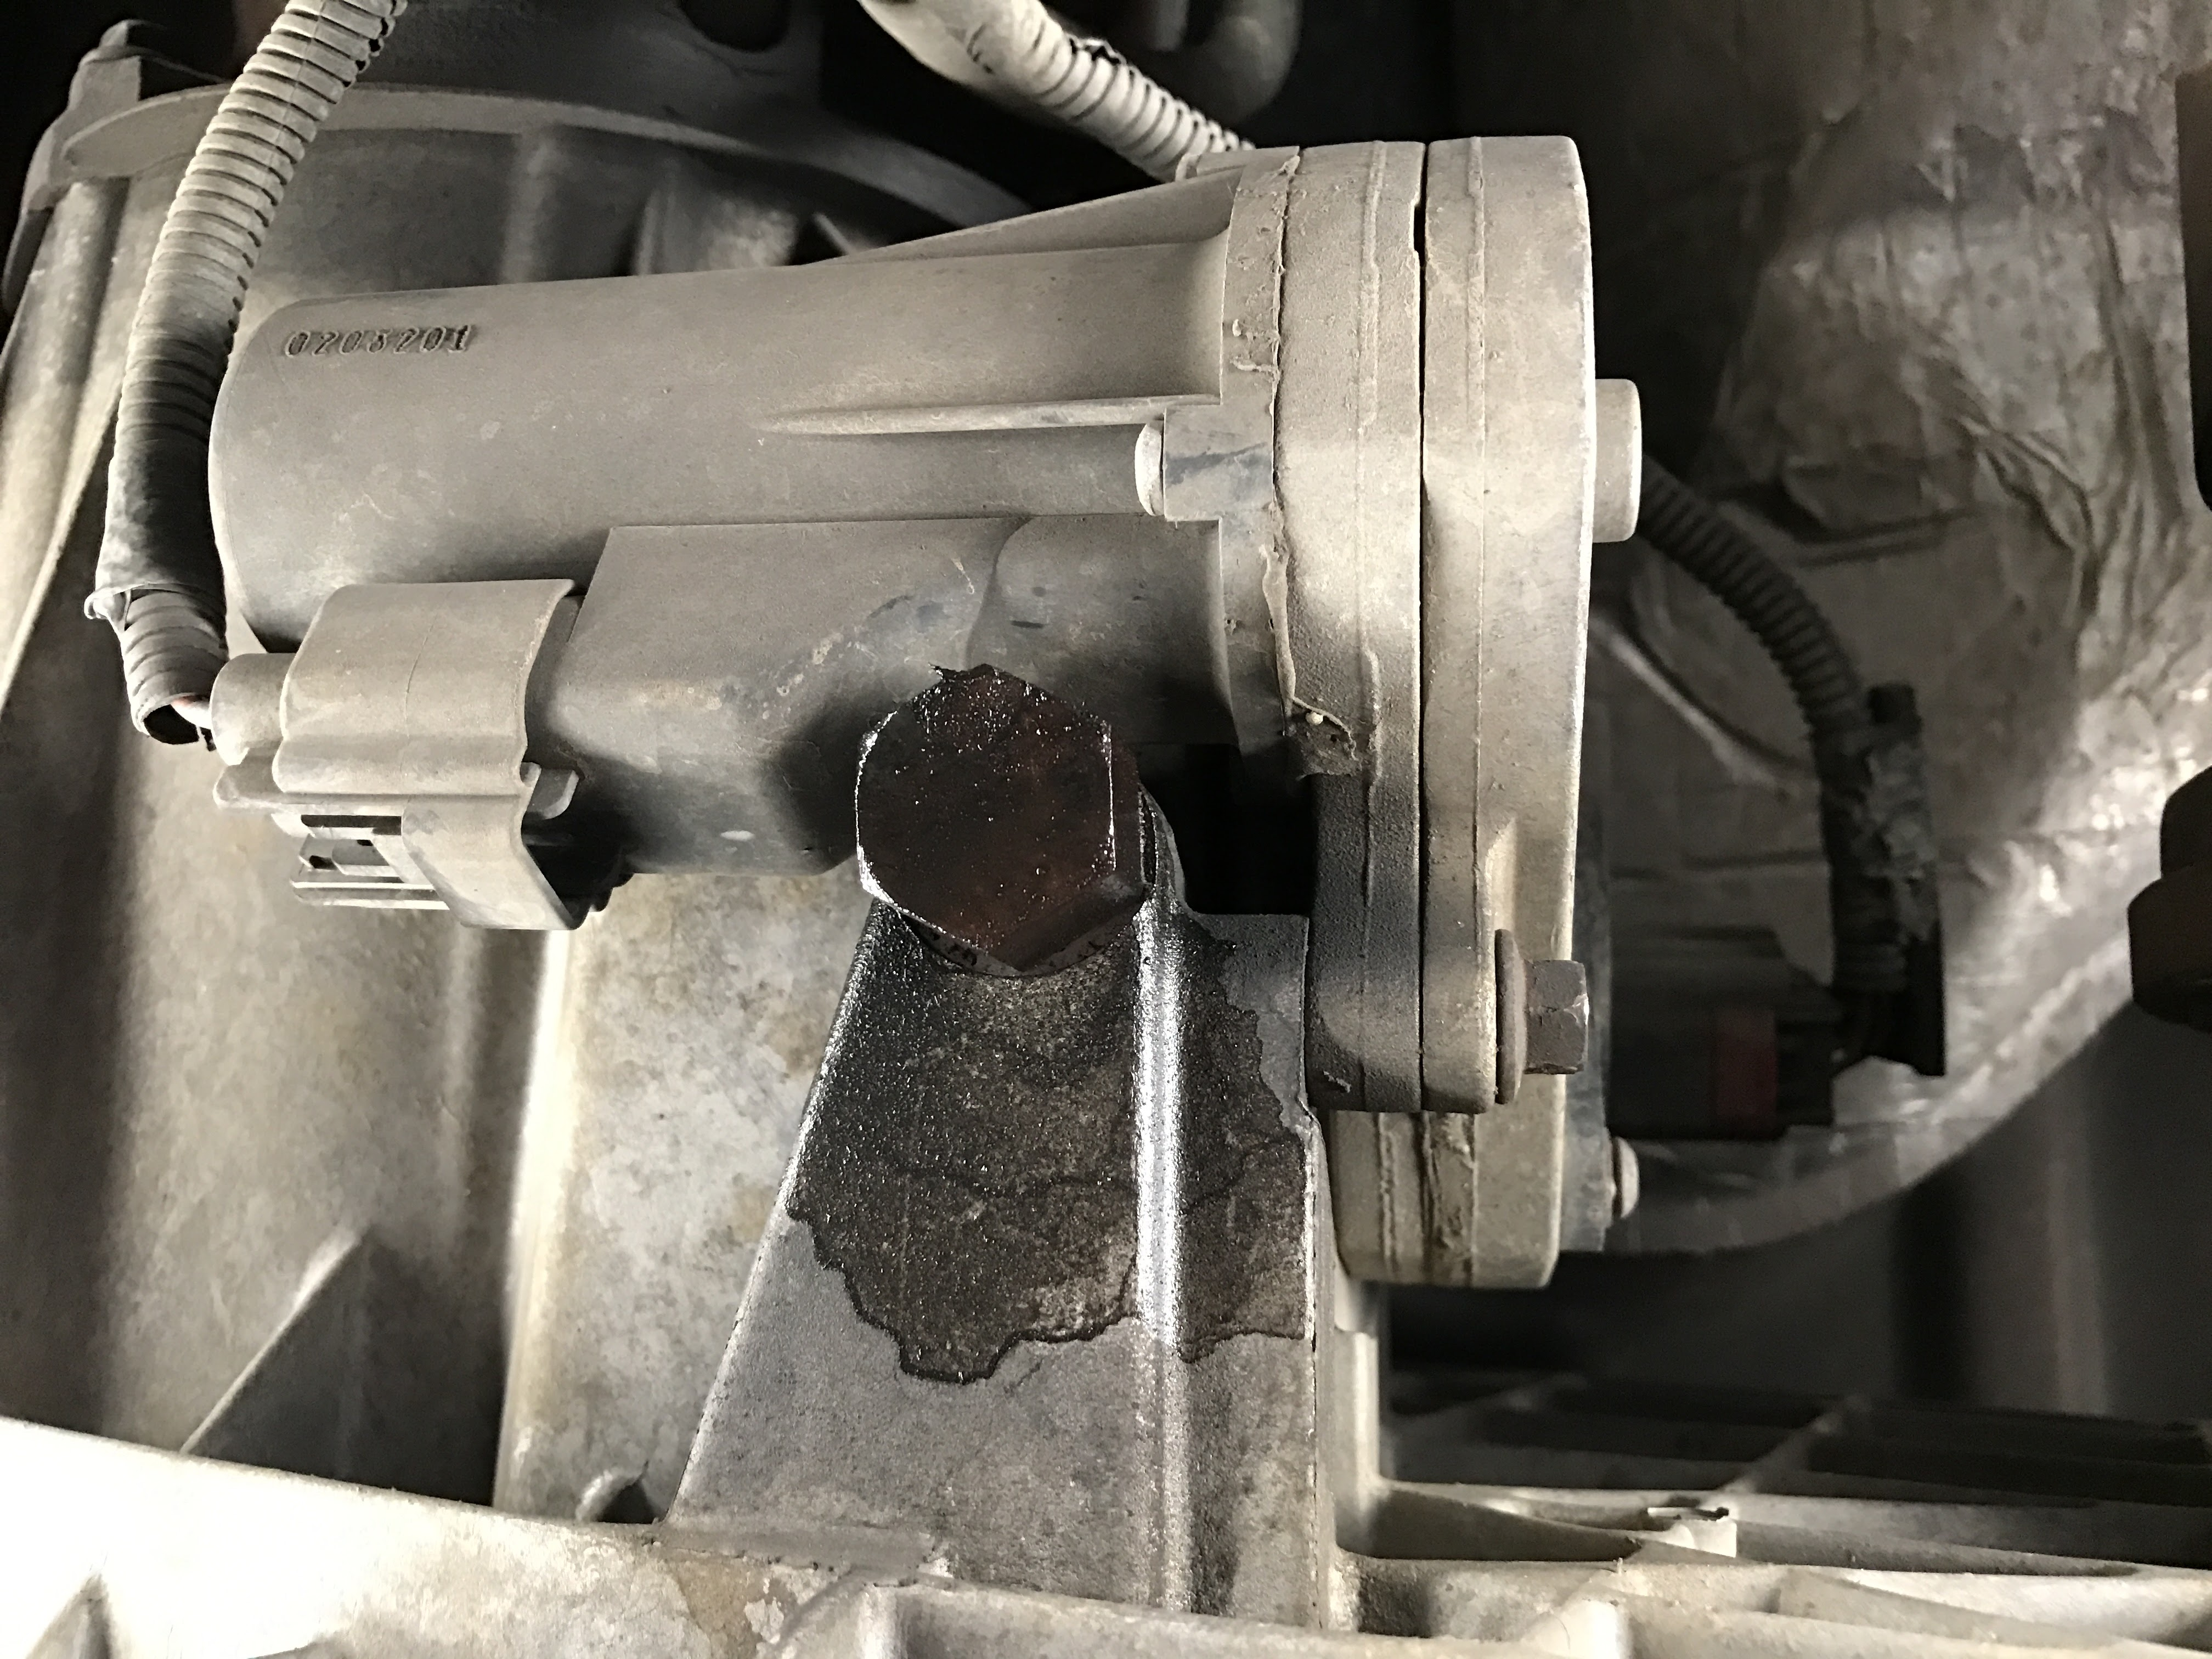 Transfer Case Leak Ford Powerstroke Diesel Forum F250 Fuel Filter Drain Click Image For Larger Version Name Img 0014 Views 134 Size 140